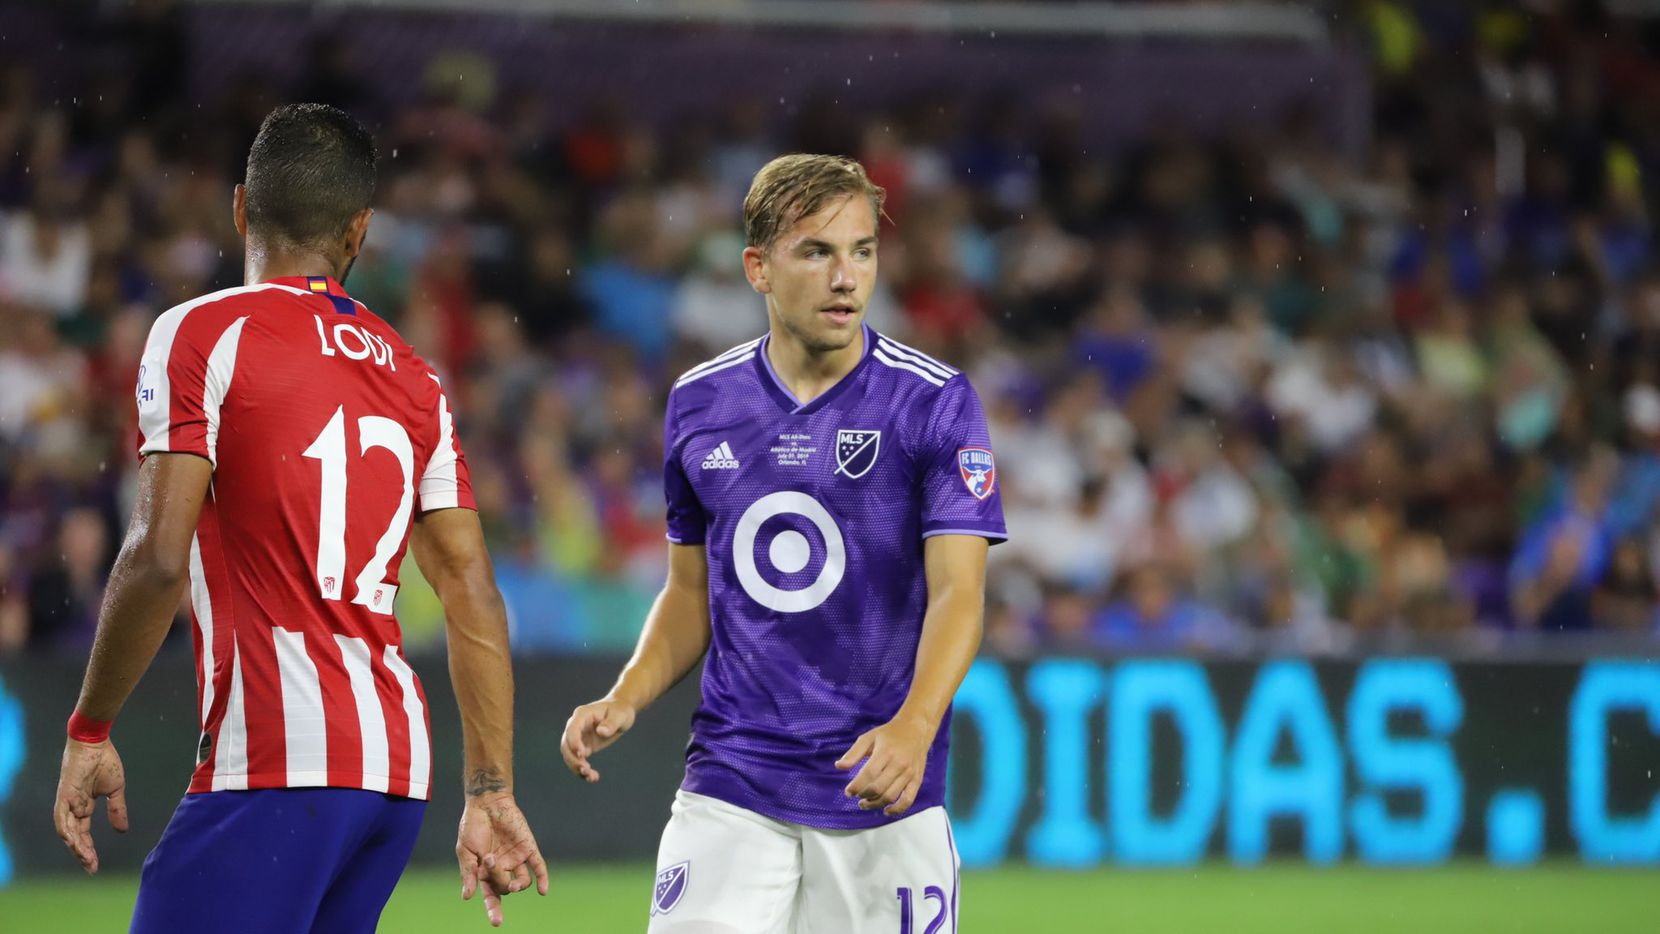 Paxton Pomykal takes part in the 2019 MLS All-Star Game. (7/31/19)